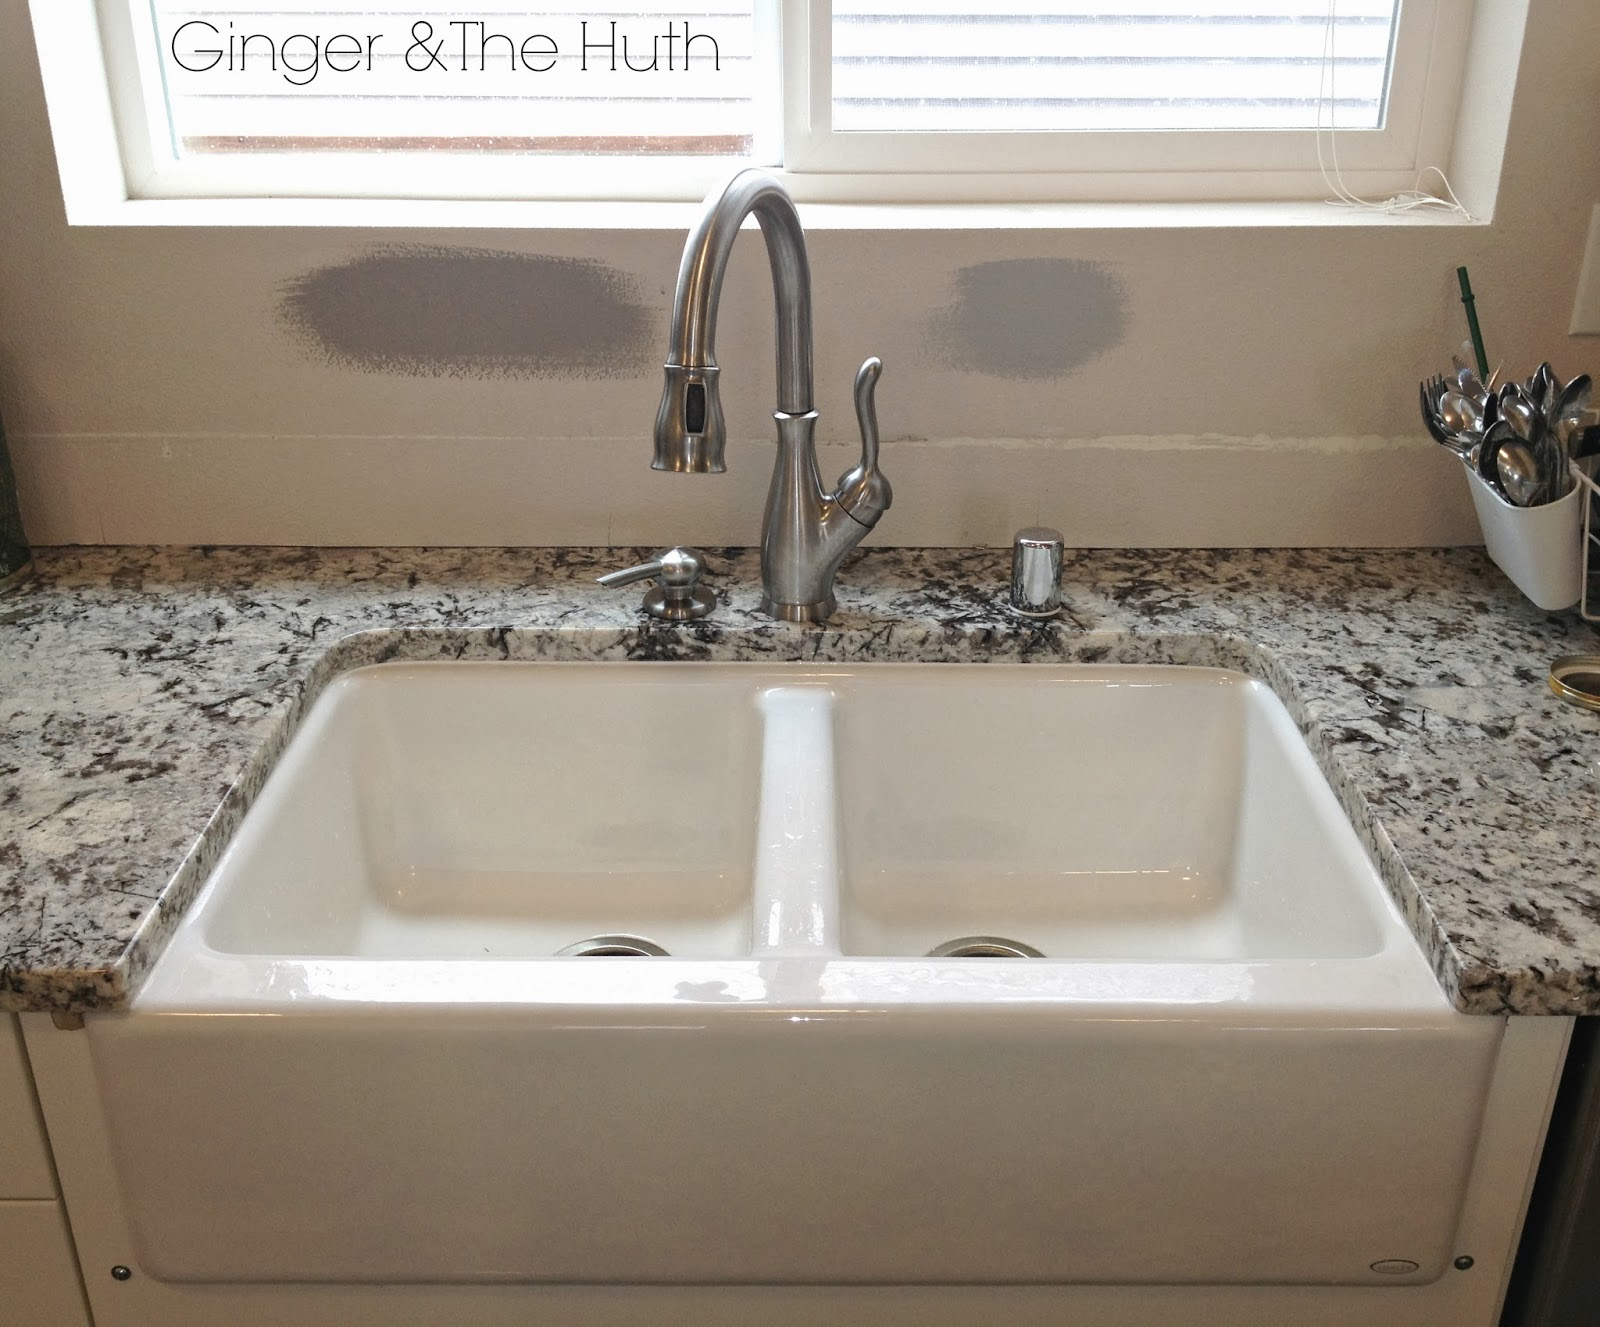 Installing A Farmhouse Sink : ... .blogspot.com/2014/01/kitchen-remodel-update-farmhouse-sink.html